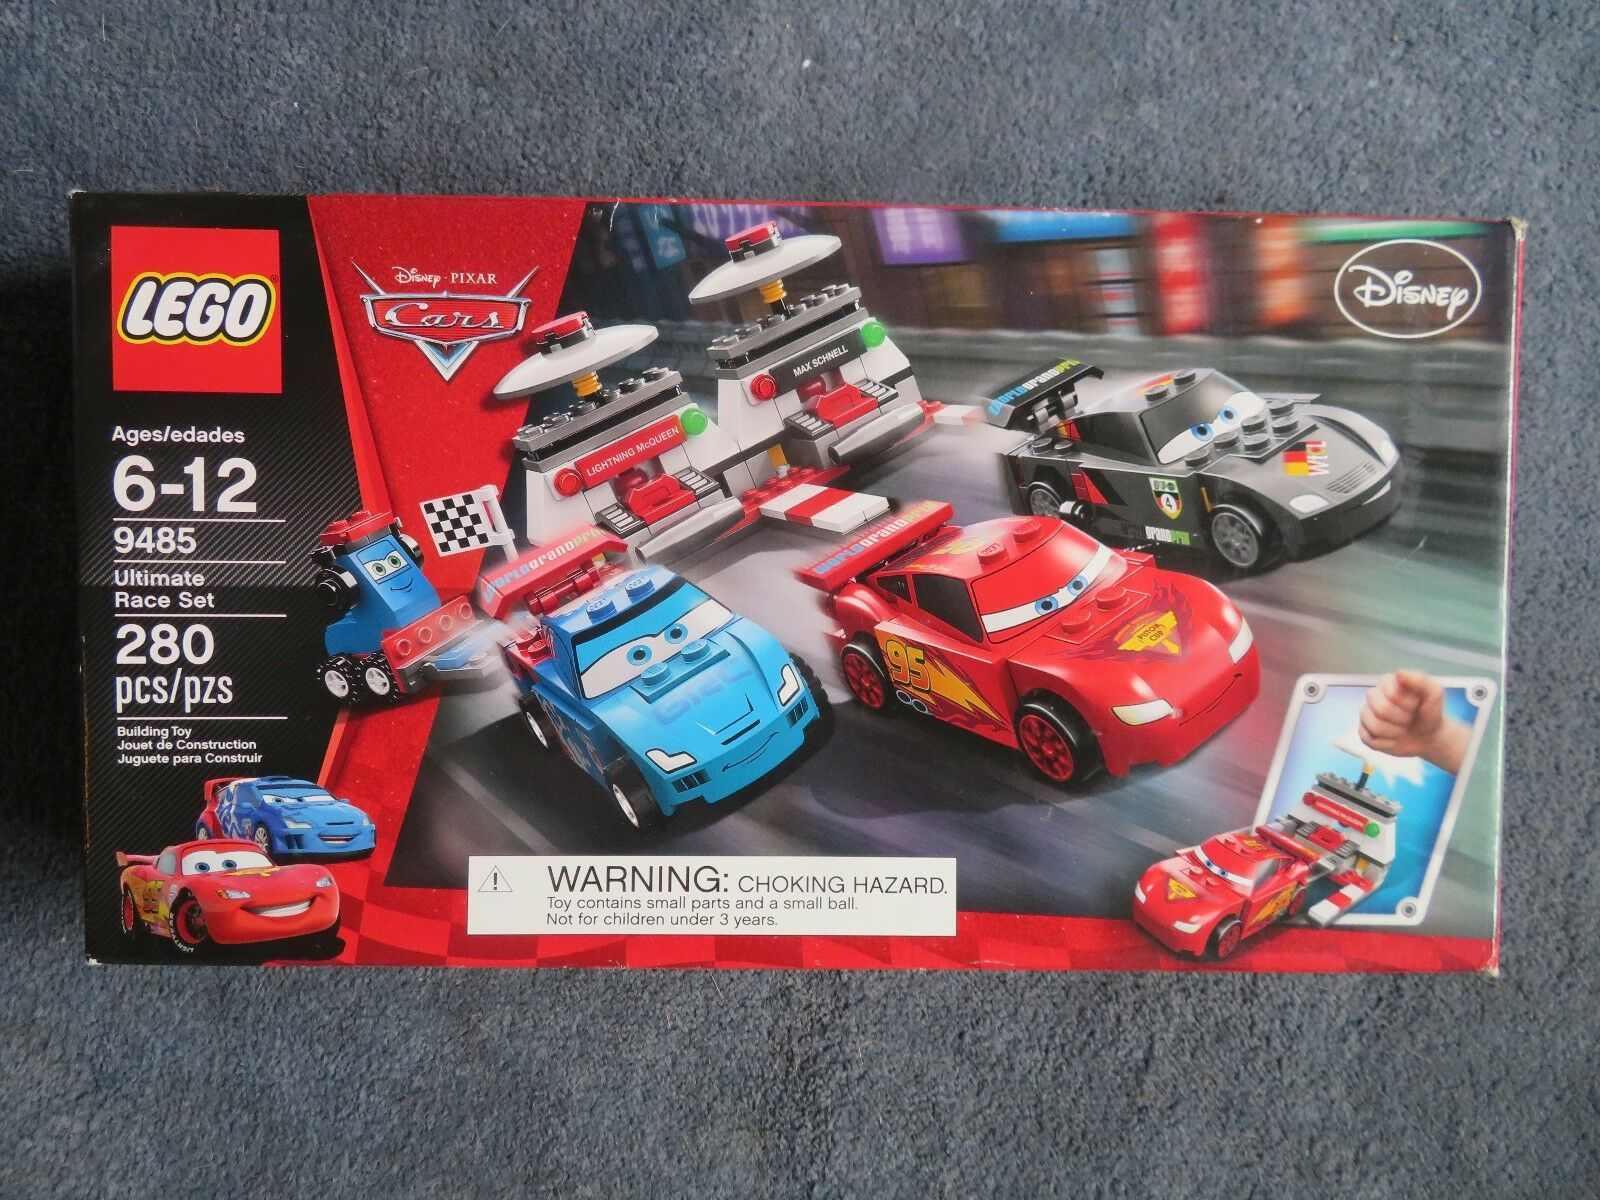 Lego Ultimate Race Set- 9485 COMPLETE w instructions & box-only 1 bag was opened